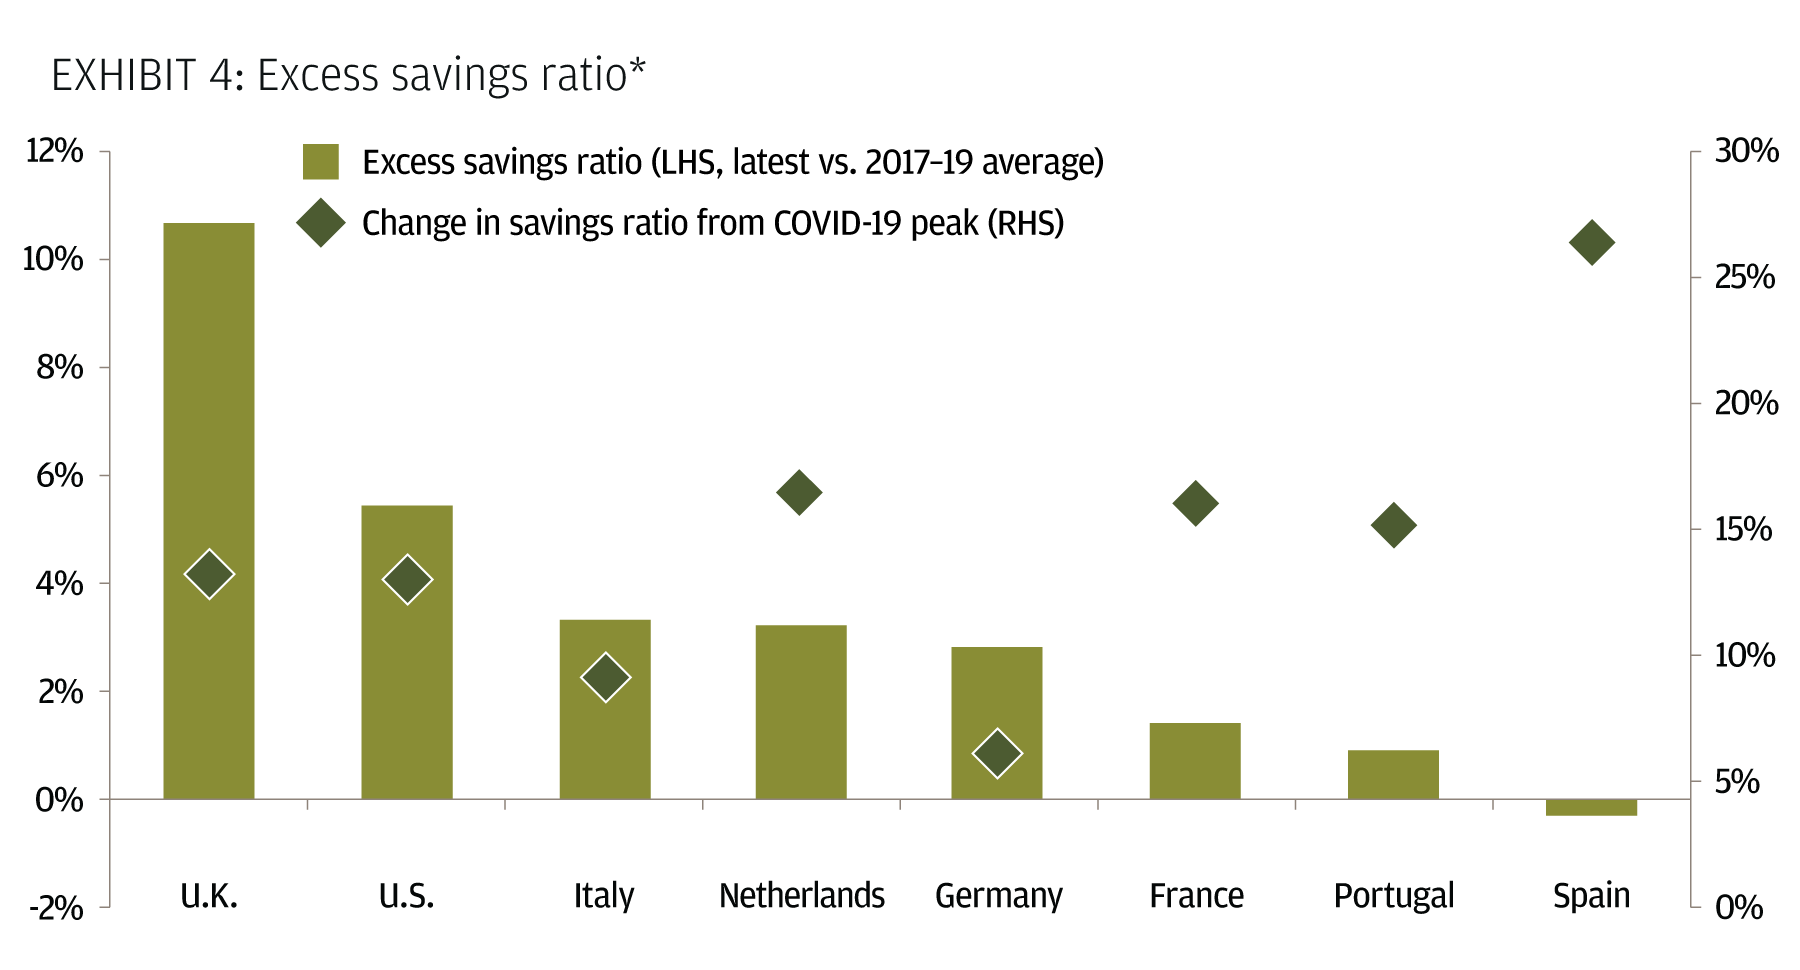 Excess savings ratio